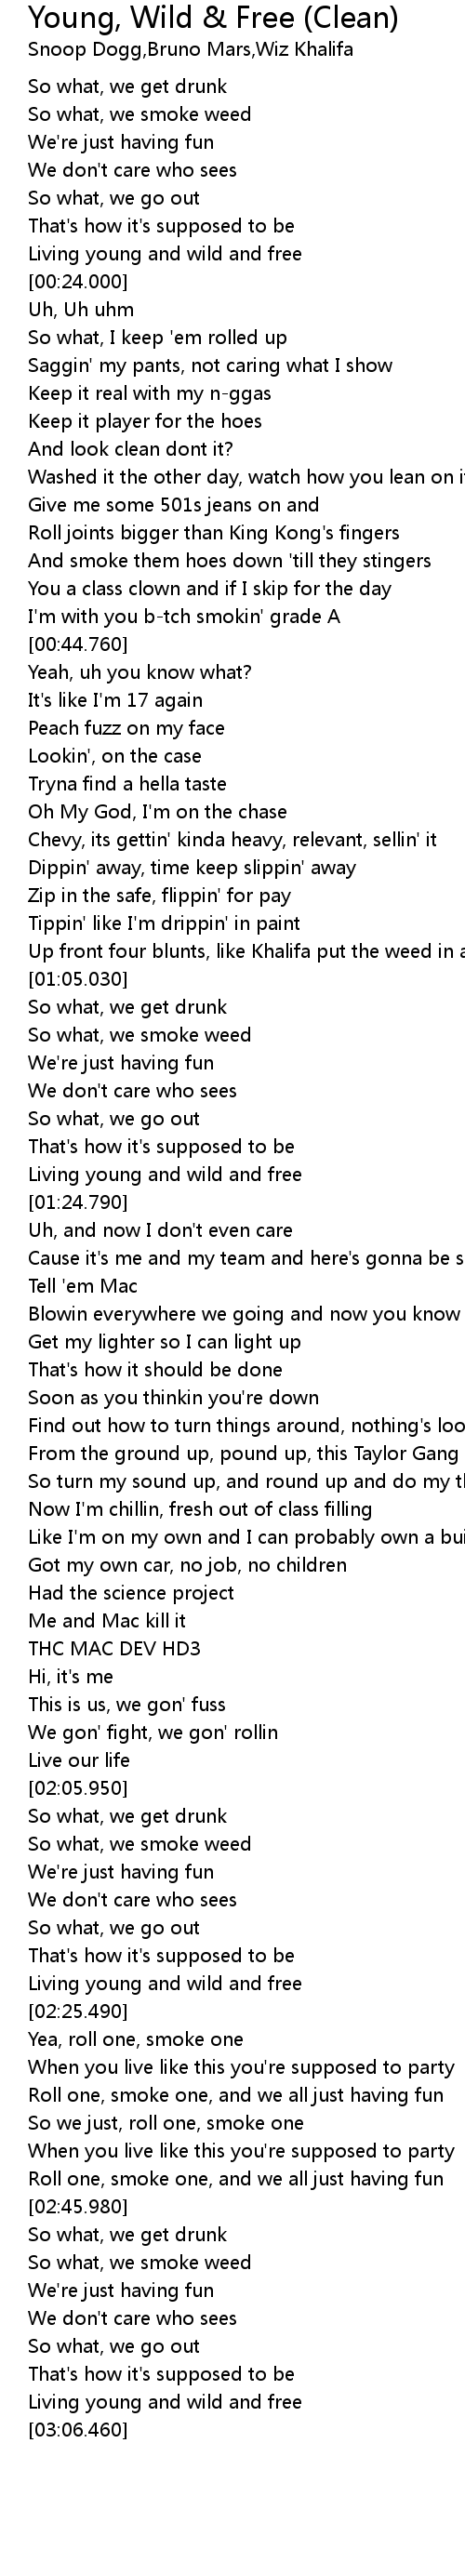 So what we go out lyrics